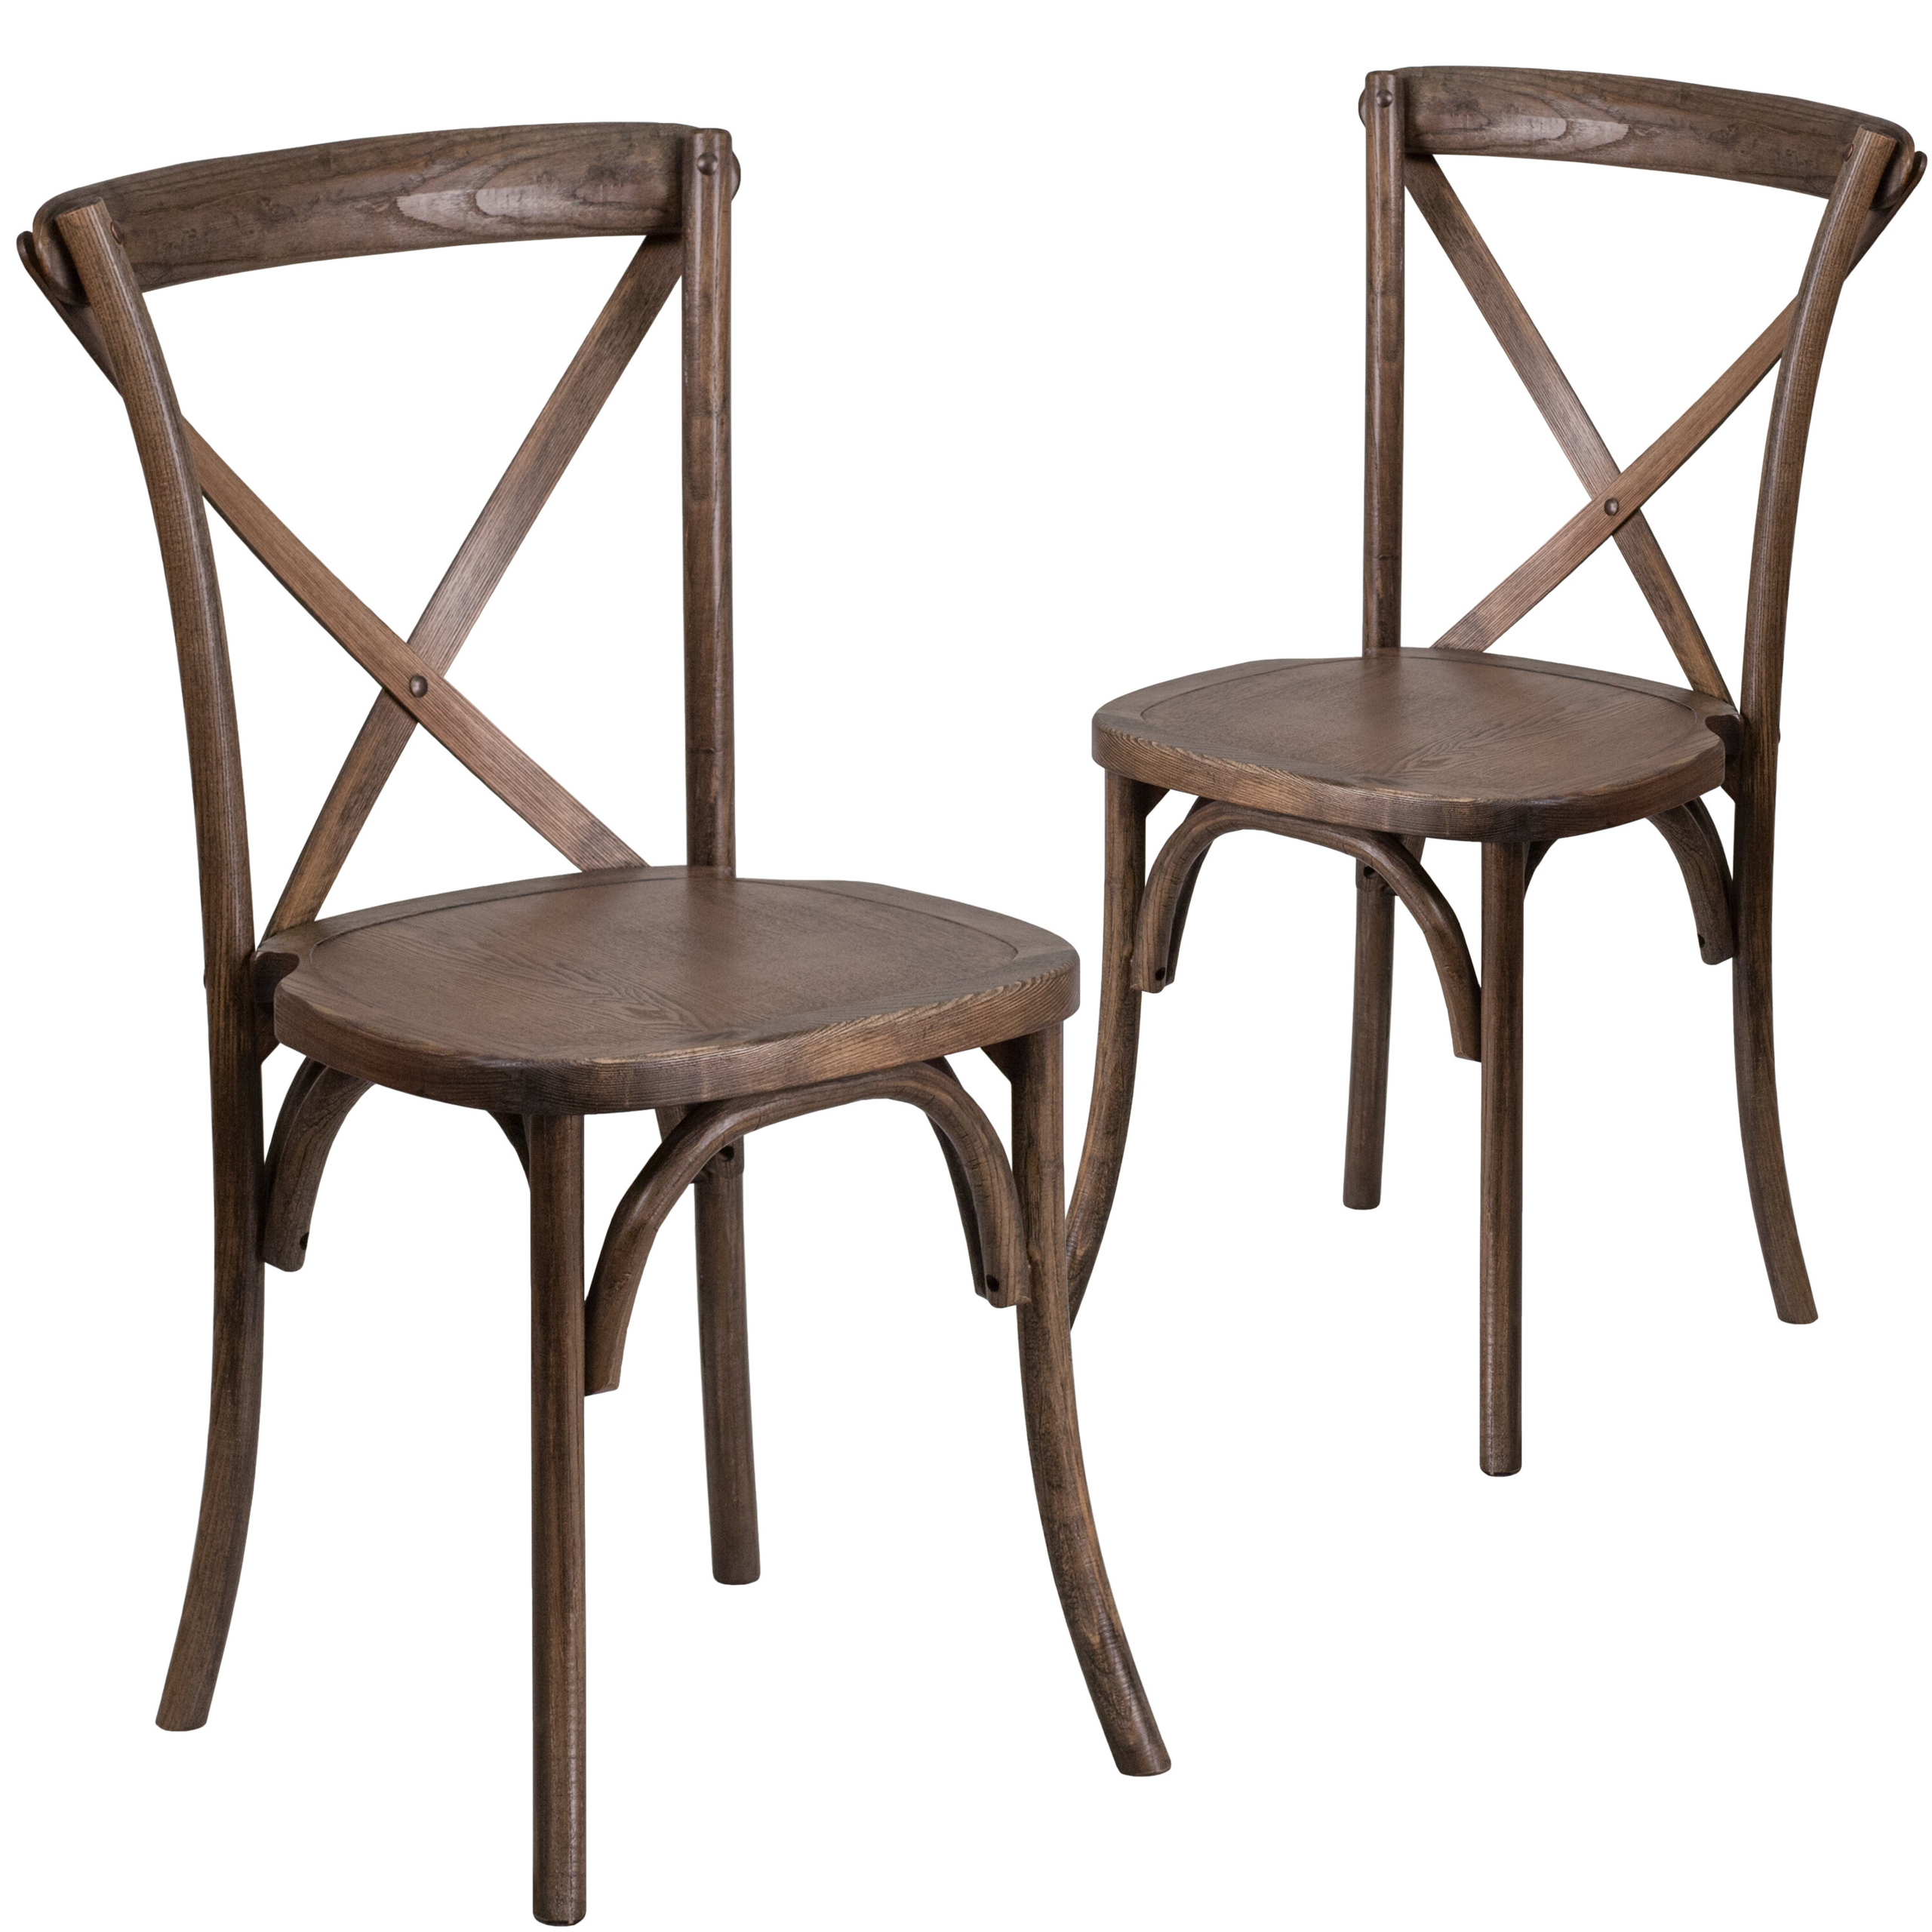 Lot of 50 Metal Frame X-Back Dining Restaurant Chairs